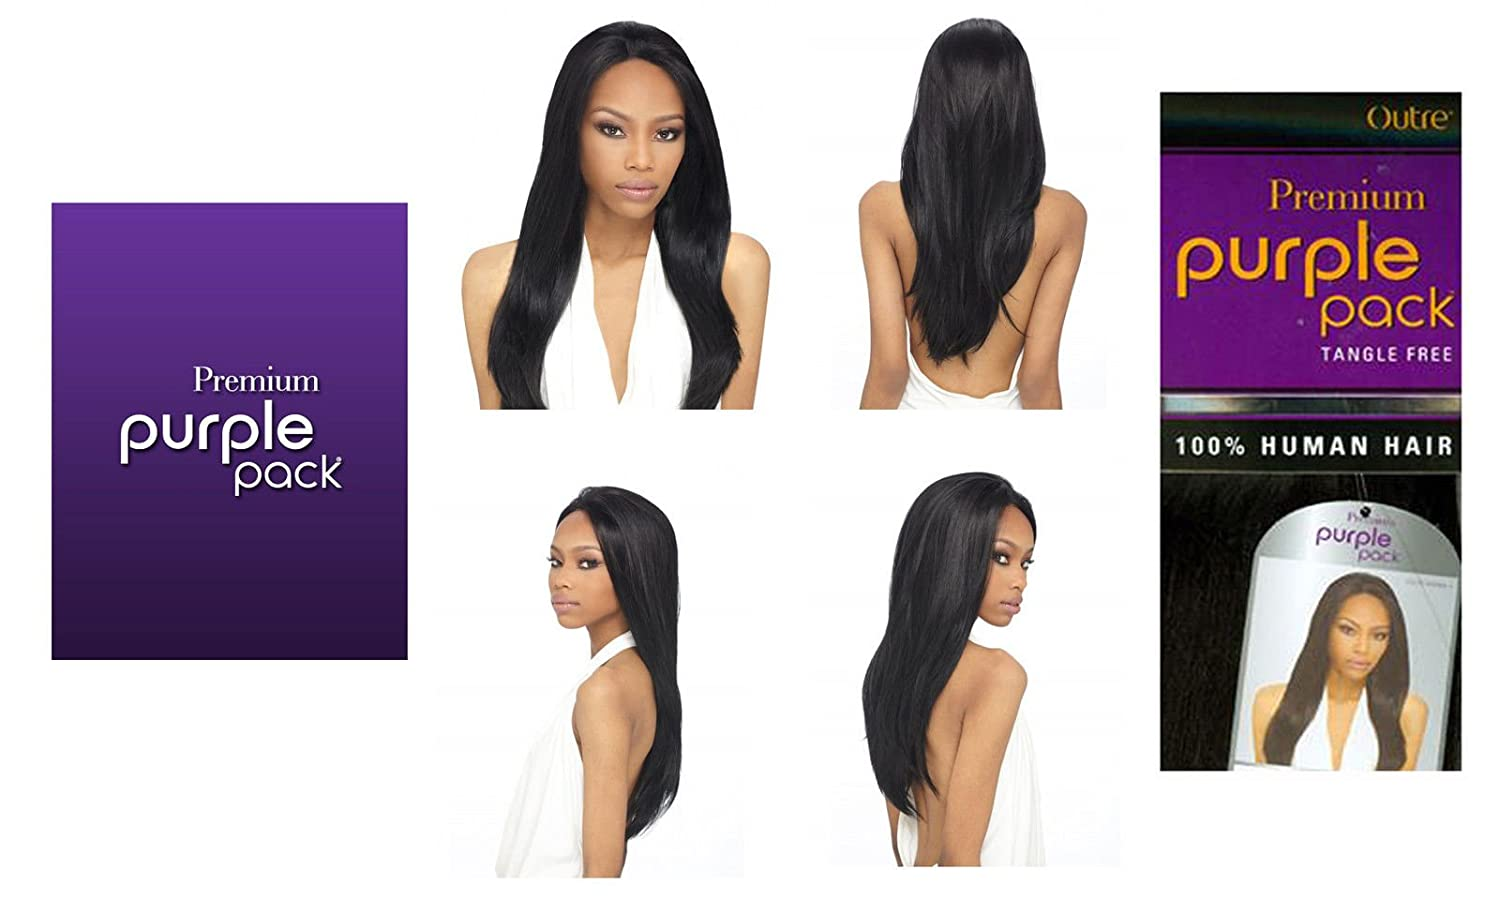 Amazon outre premium purple pack 100 human hair yaki 10 amazon outre premium purple pack 100 human hair yaki 10 inch 10 950 beauty pmusecretfo Images